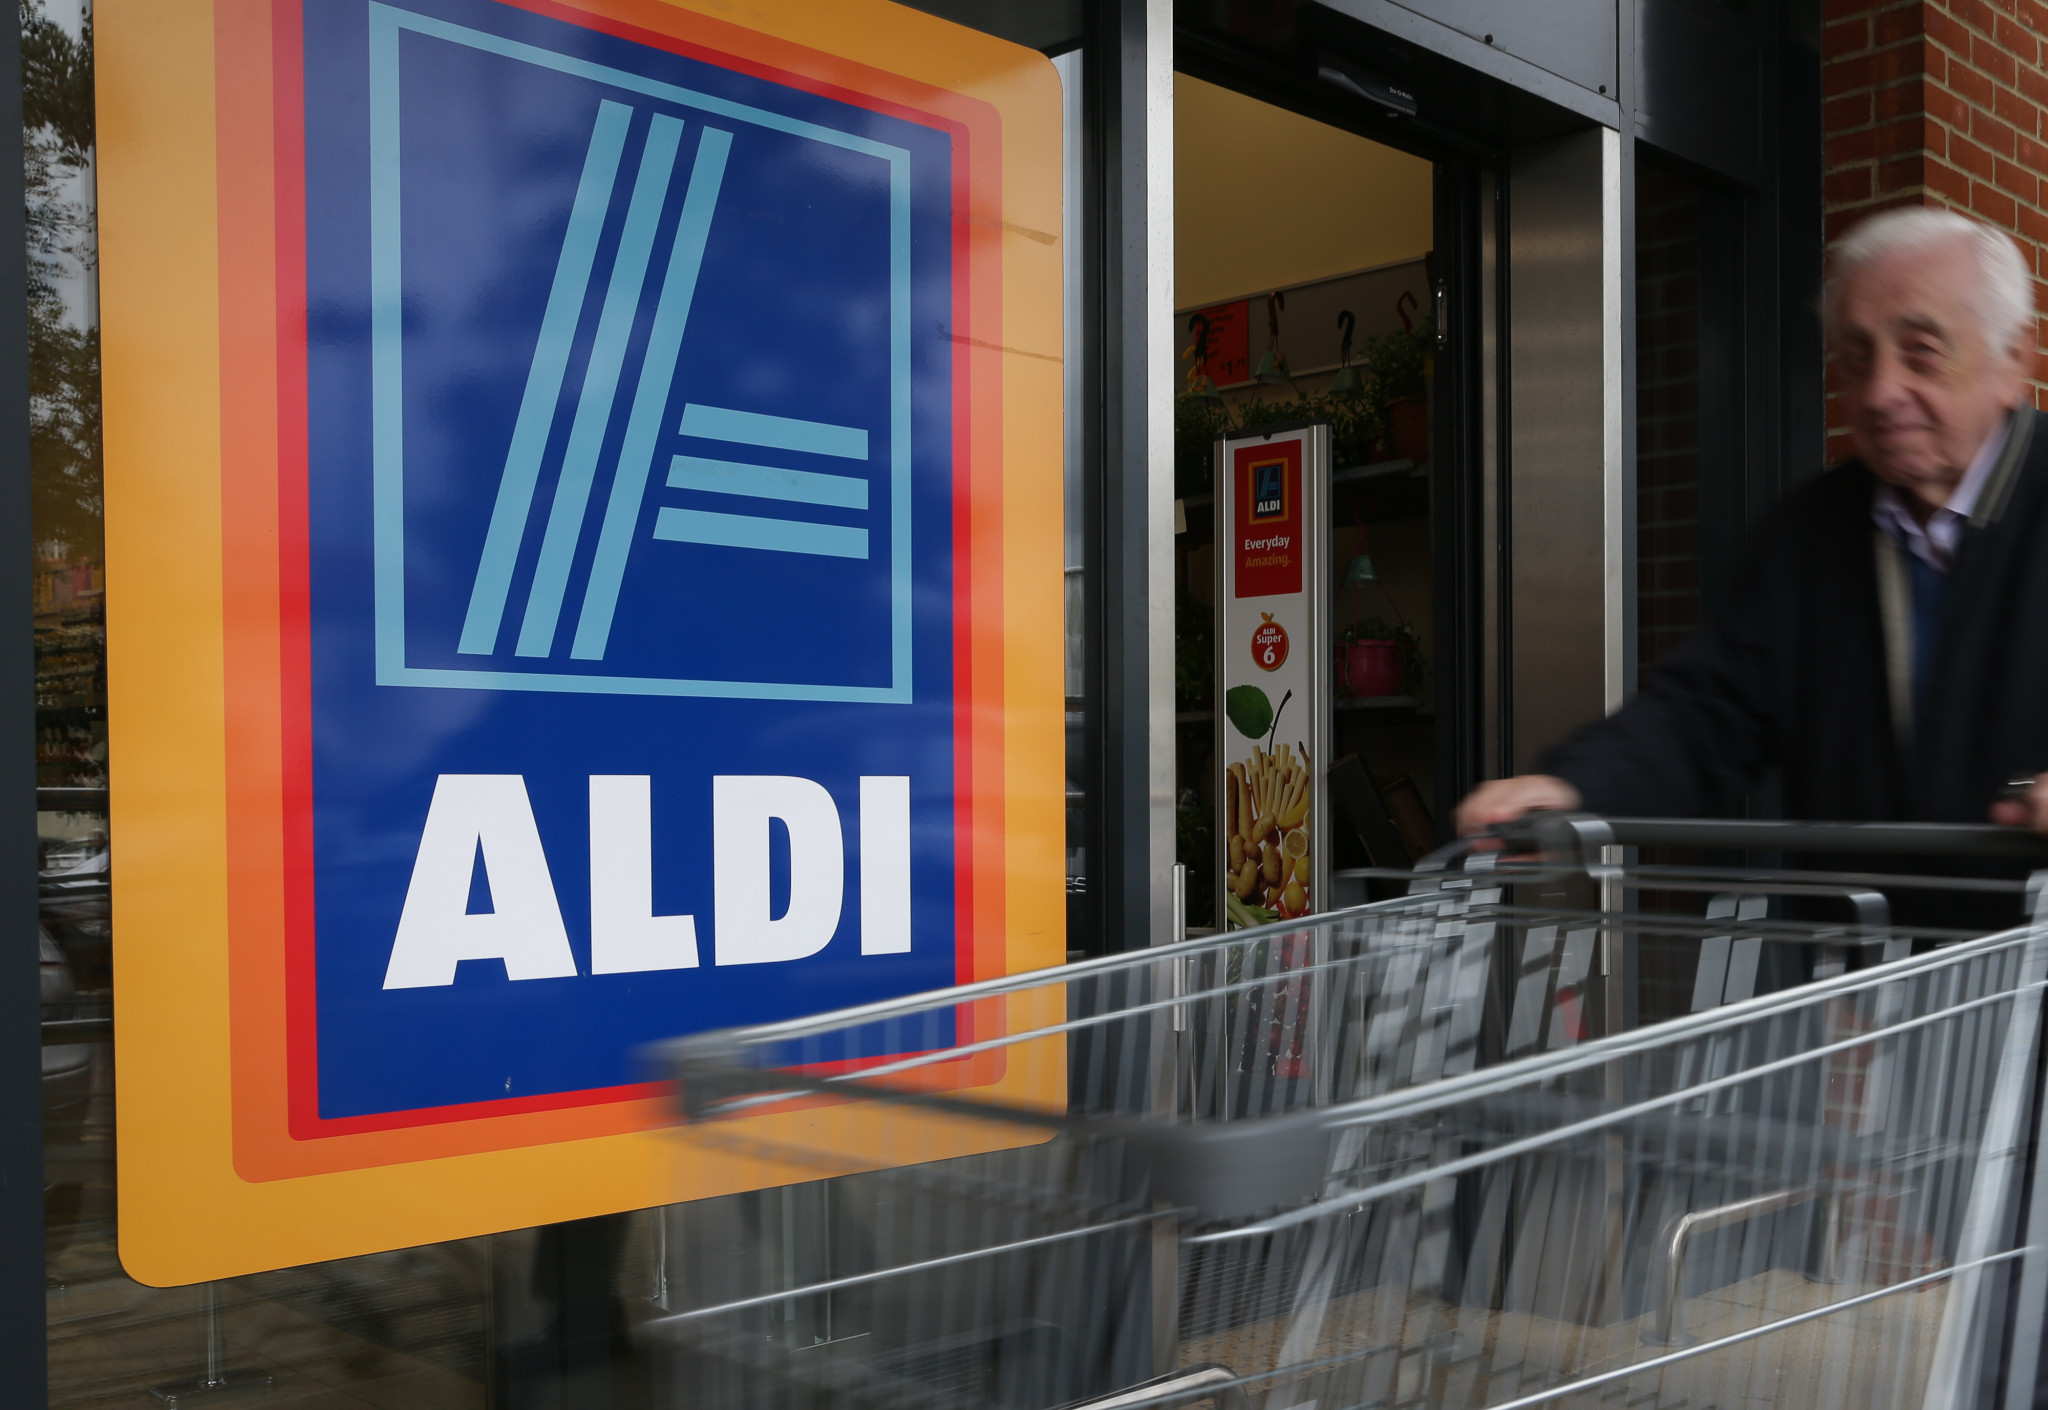 British Olympic Association extend deal with Aldi until 2025